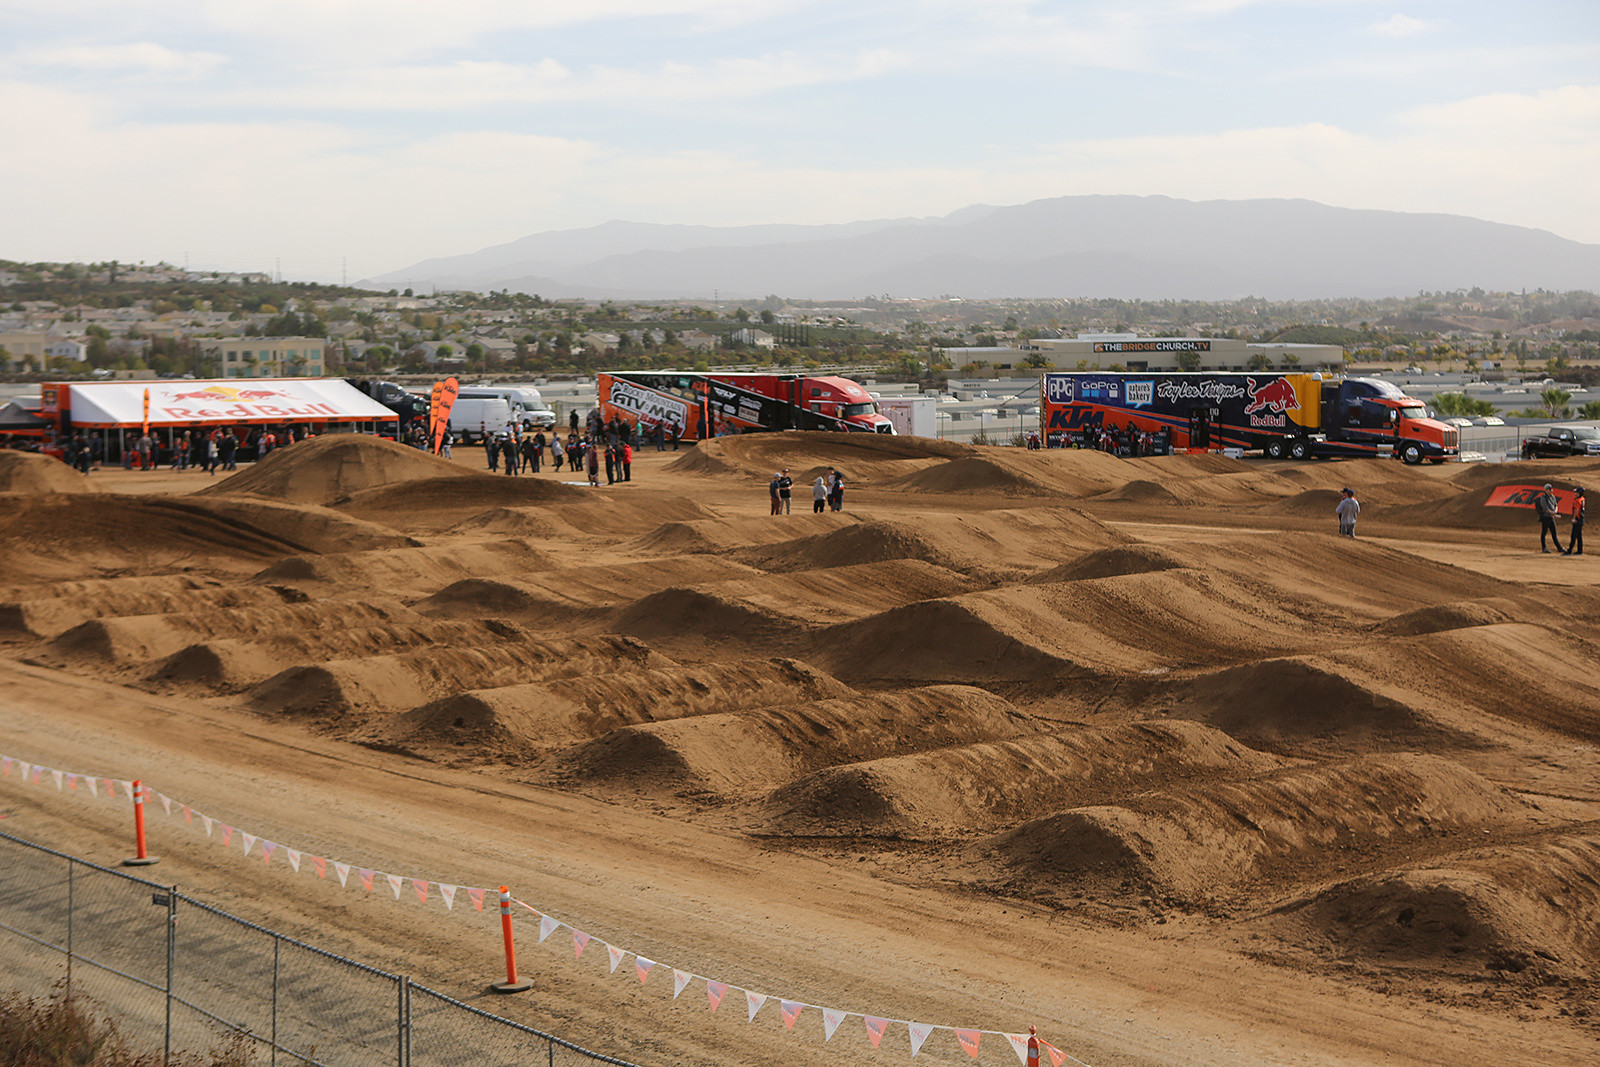 KTM's new RD (Roger DeCoster, and Ryan Dungey) Field above their headquarters in Murietta, CA. This spot will be home to two Supercross tracks, and an Endurocross training zone. The whoops? They were big, slippery, and giving riders some fits. But they'll be a good real-world test before they hit the track this season.